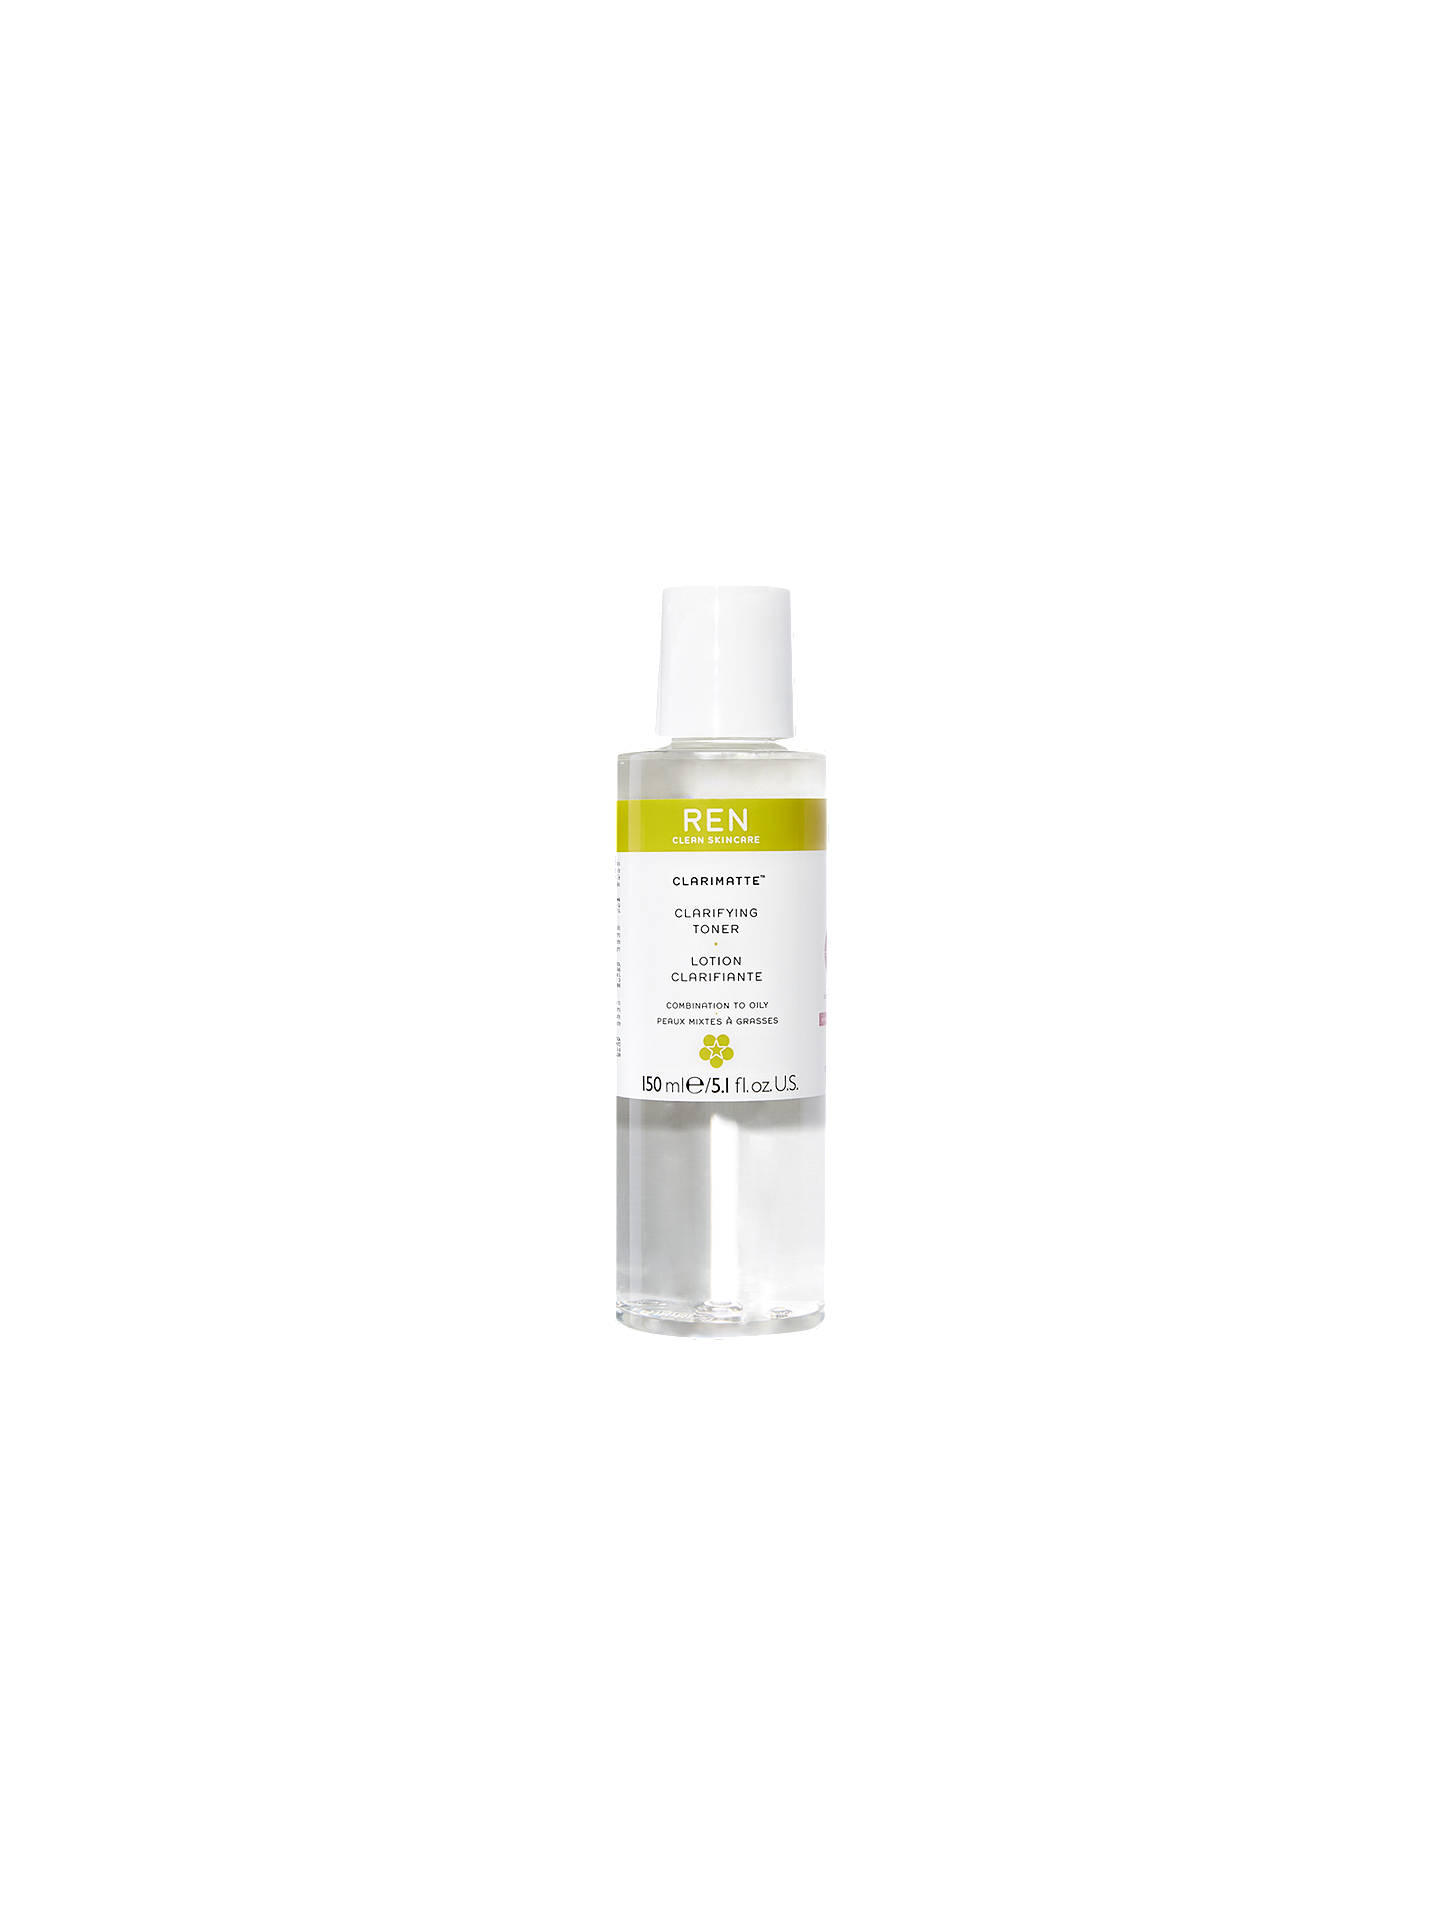 Buy REN Clarimatte Clarifying Facial Toner, 150ml Online at johnlewis.com